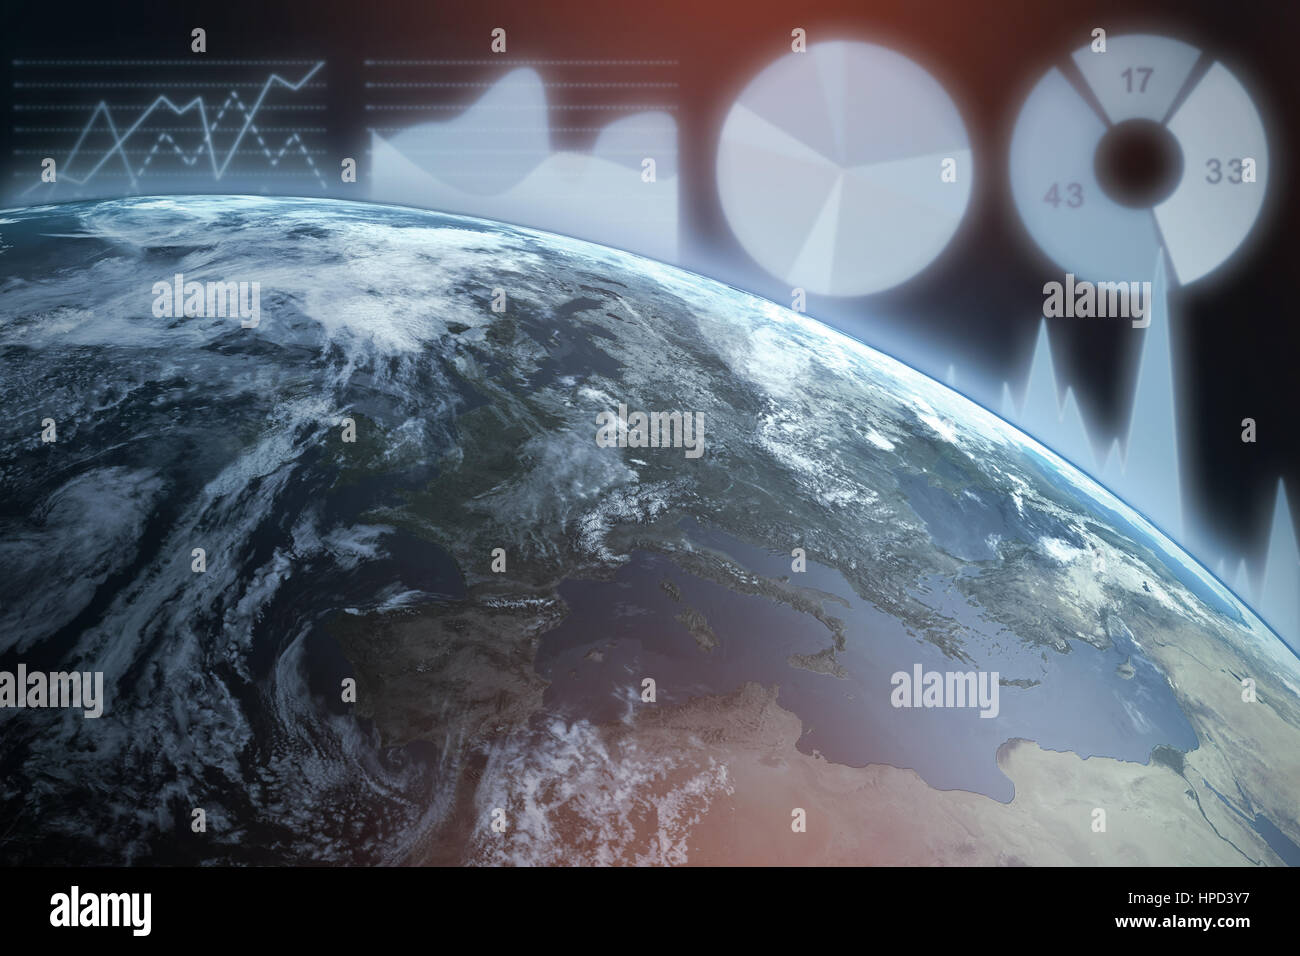 3d Satellite view of earth against blue background with vignette - Stock Image